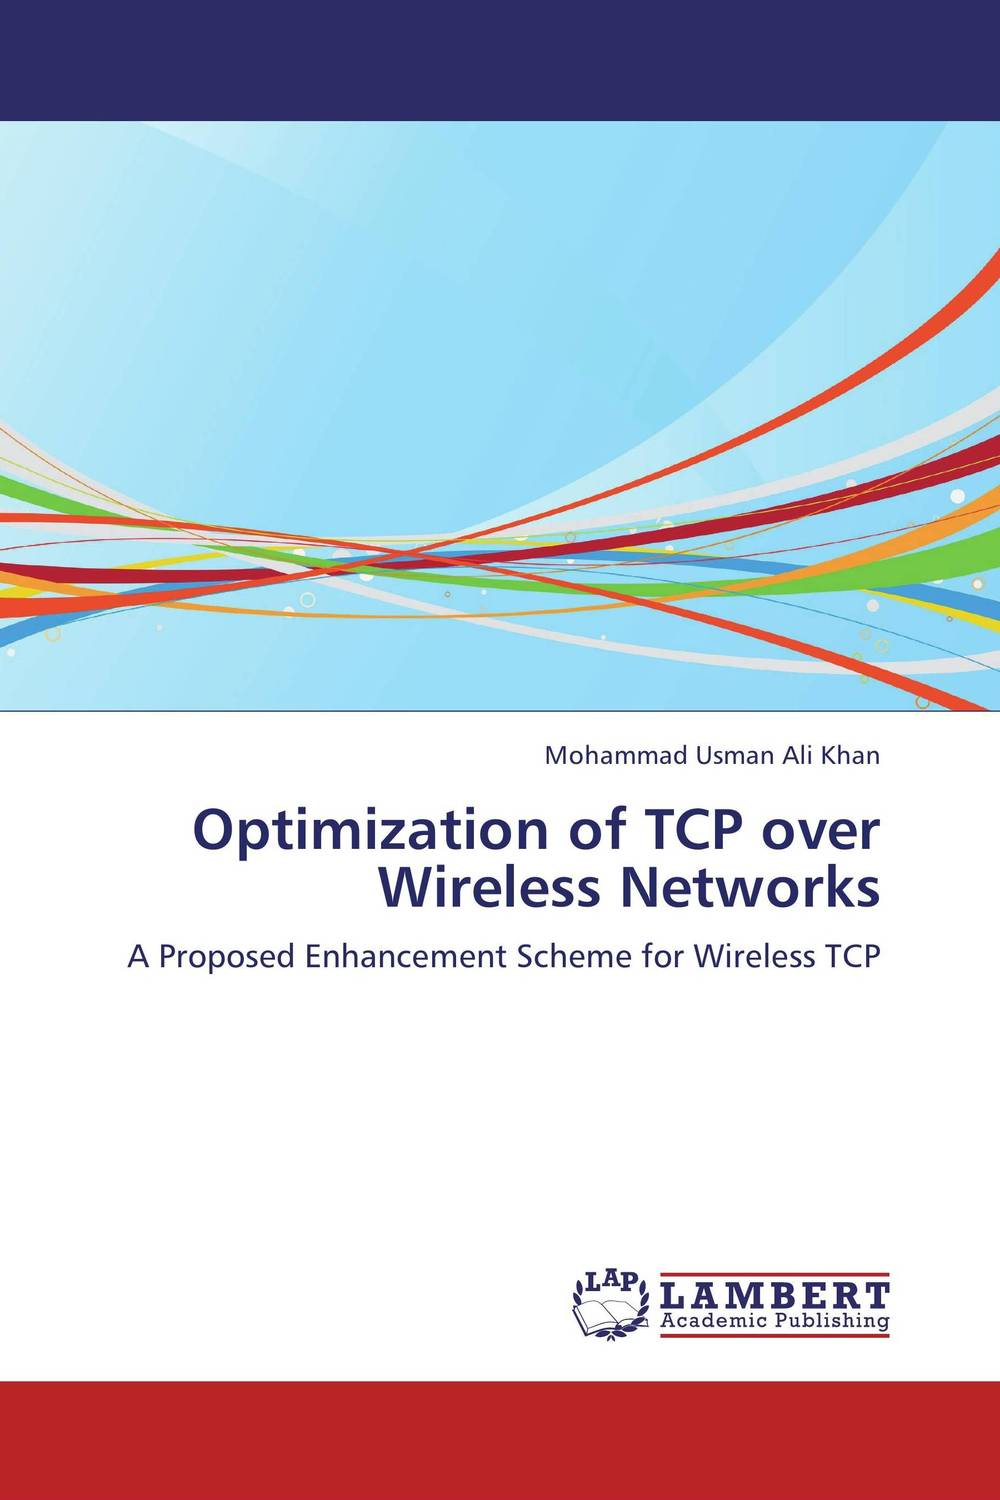 Optimization of TCP over Wireless Networks mohammad usman ali khan optimization of tcp over wireless networks